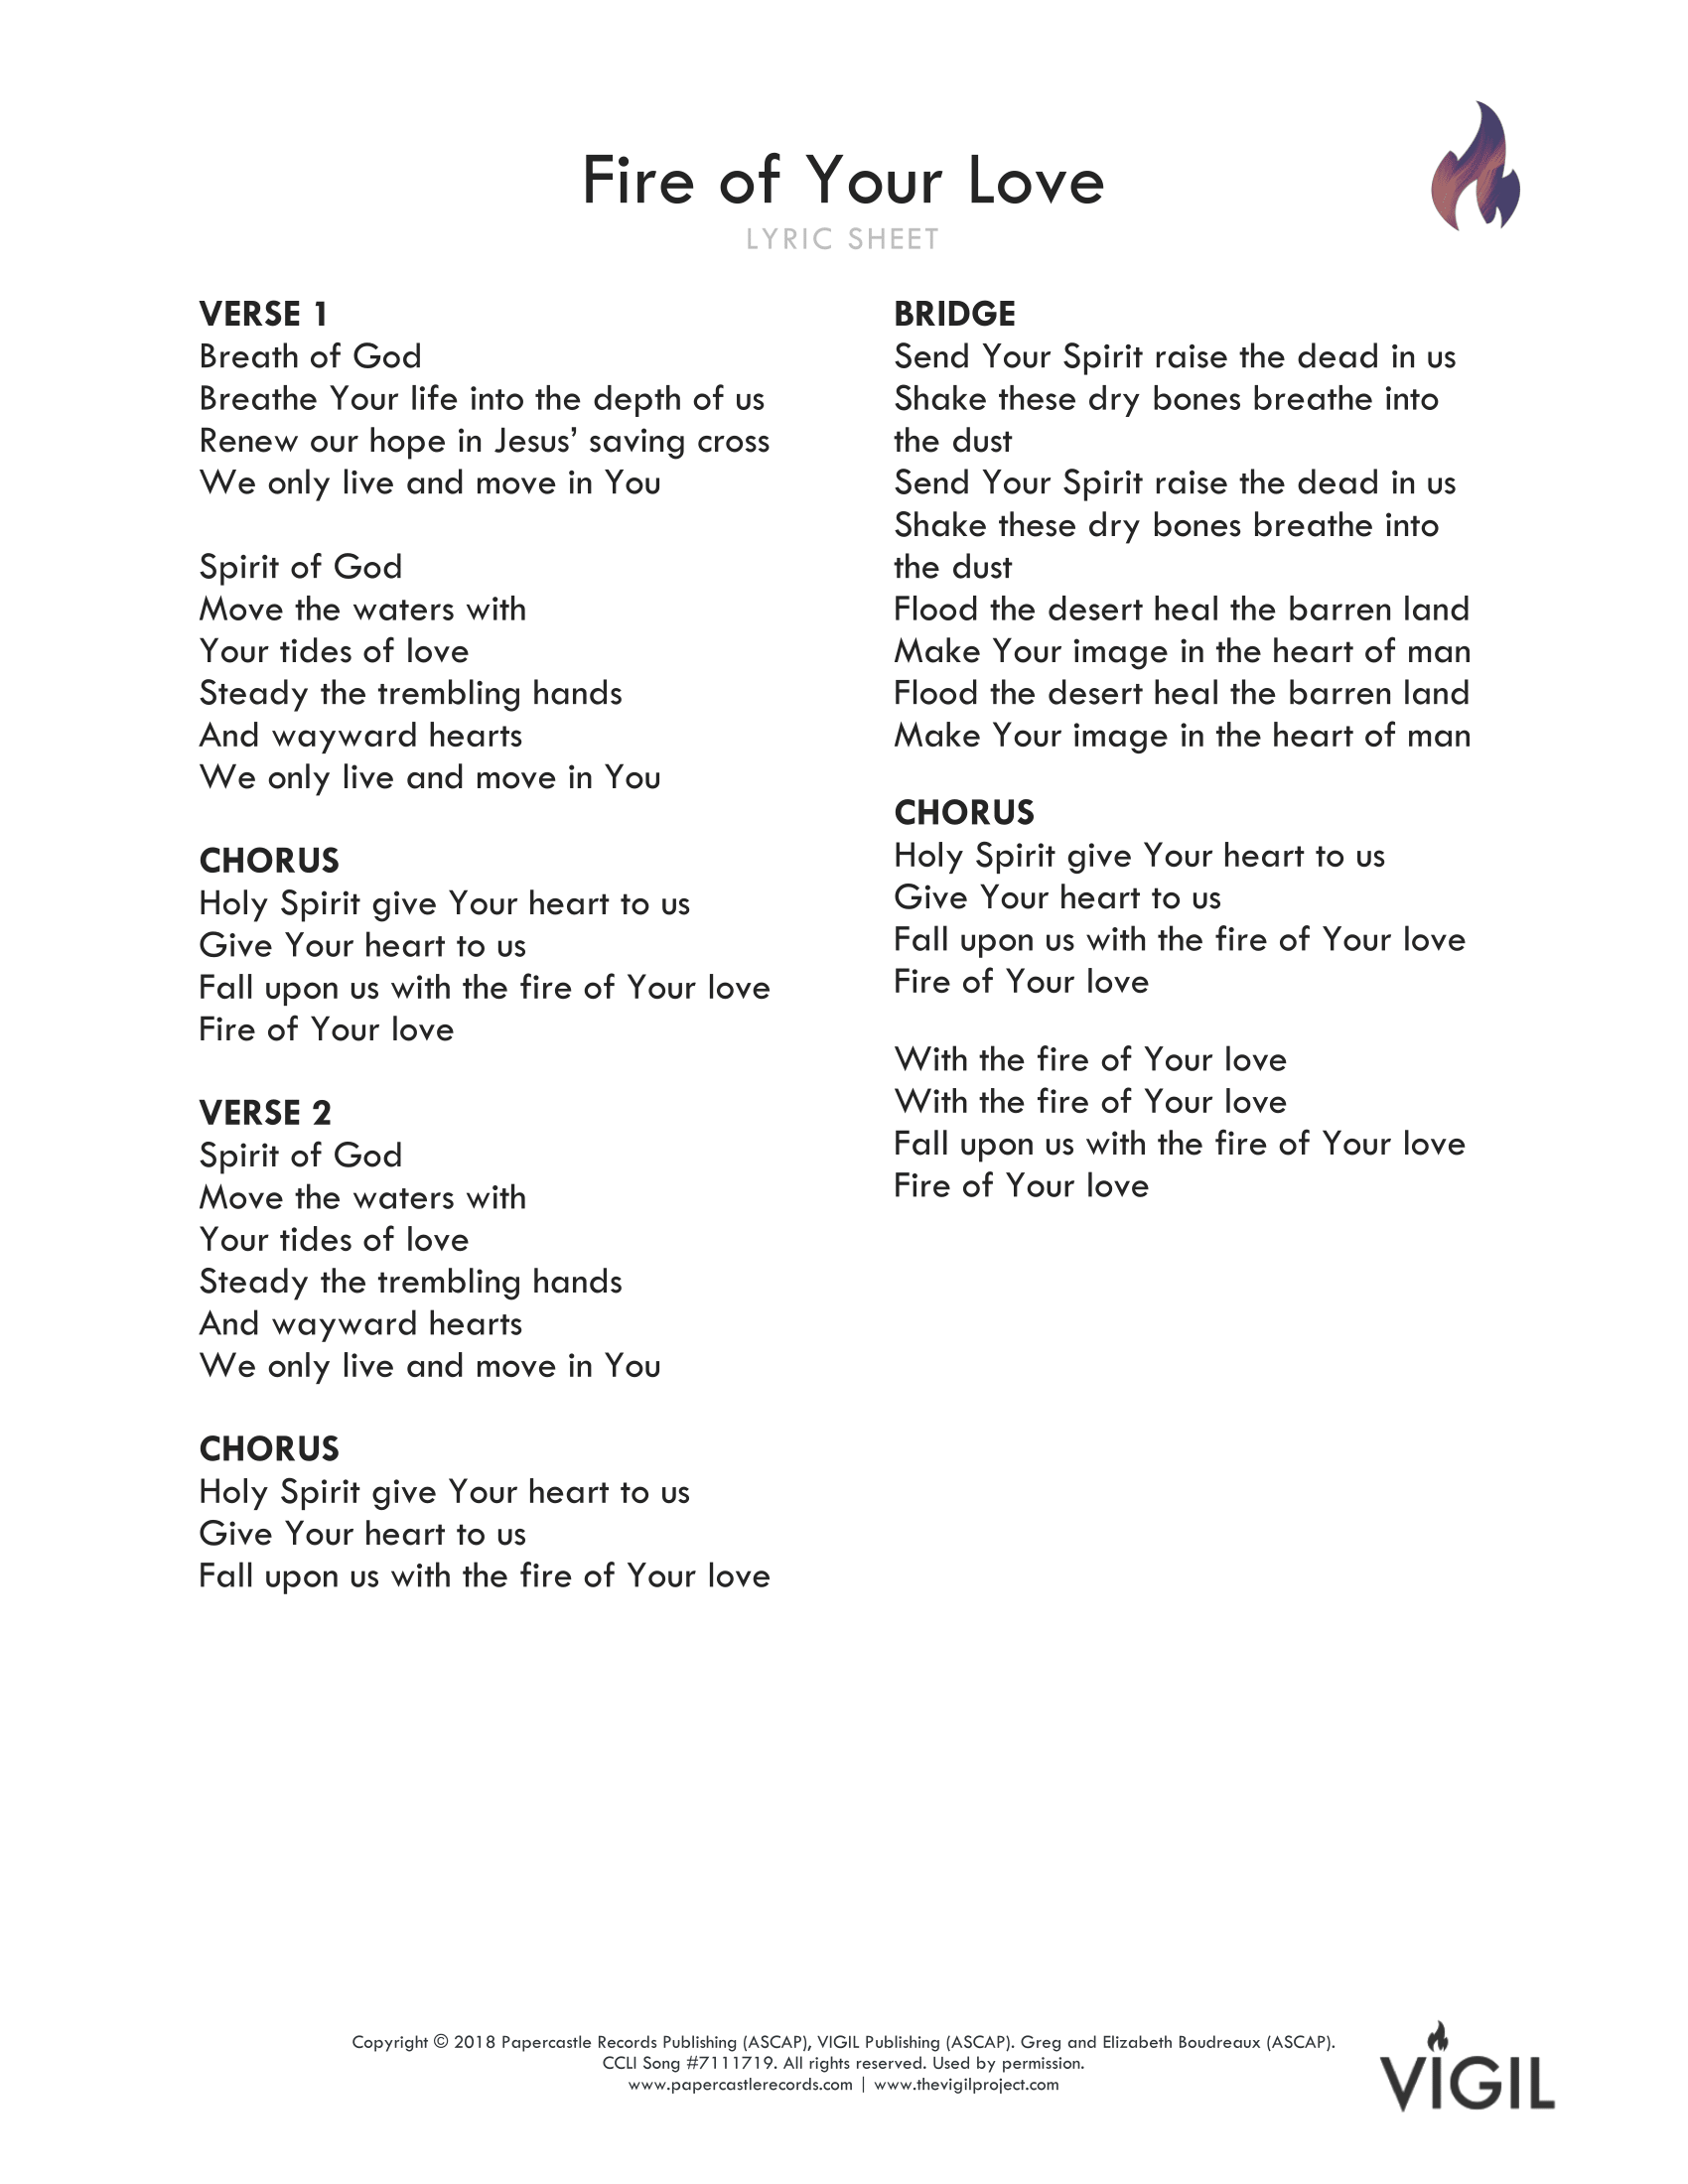 Fire+of+Your+Love-LYRIC+SHEET-1.png